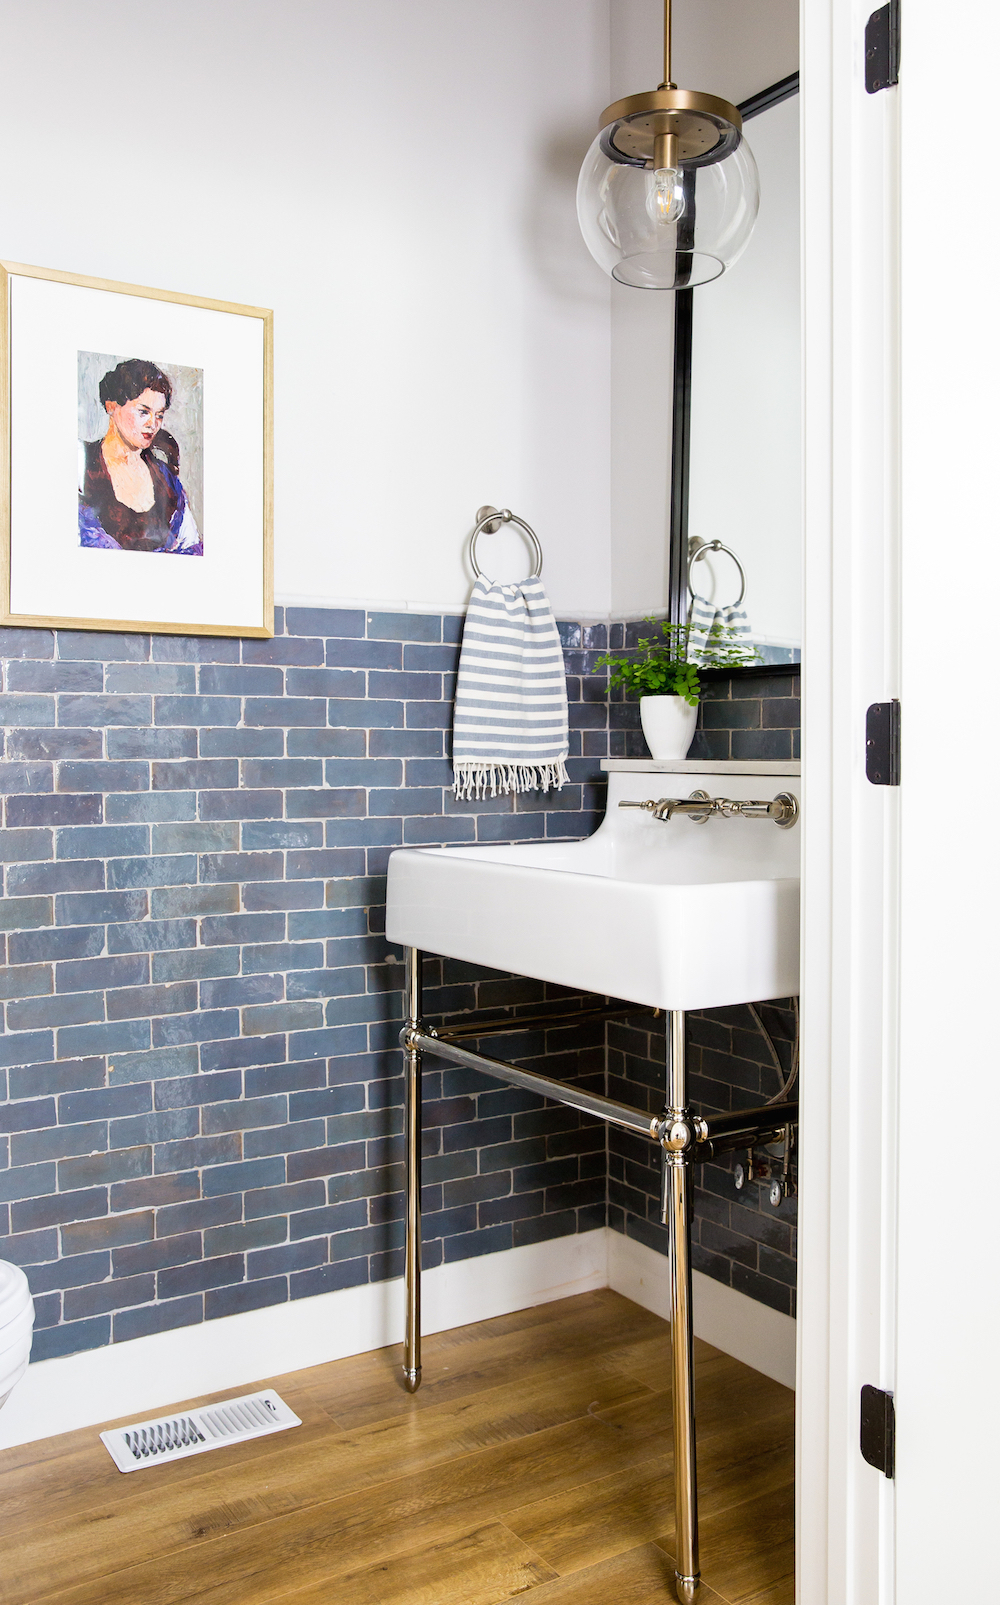 Powder room with blue zellige tile - House of Jade Interiors || 15 small cloakrooms / powder rooms that are big on style - FIRST SENSE